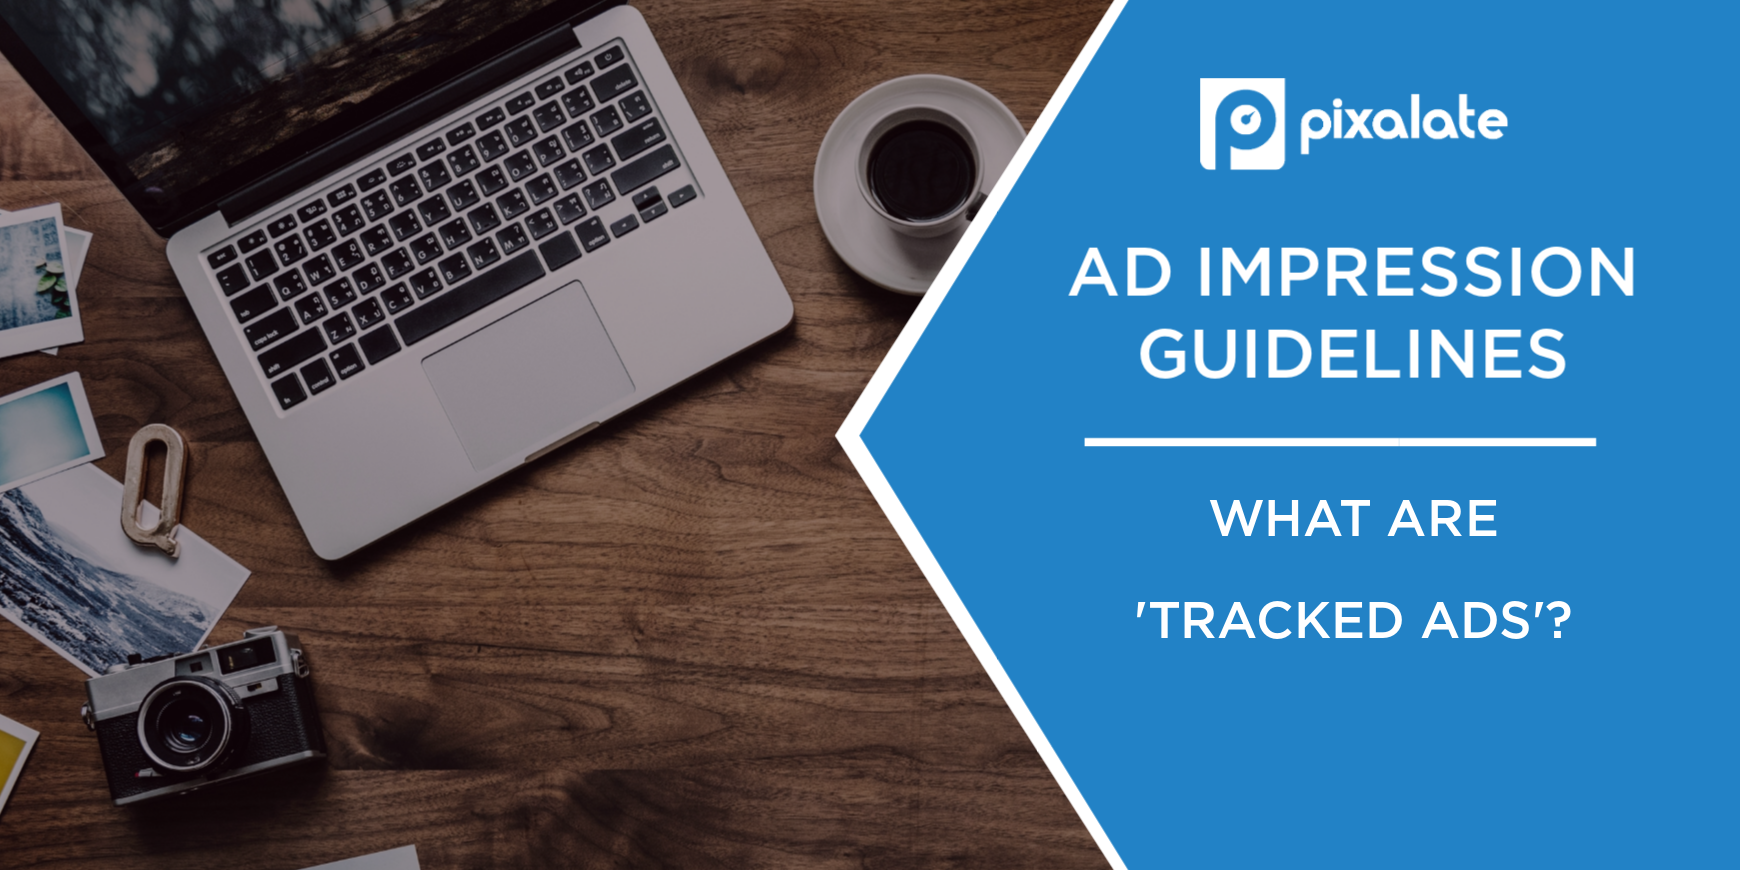 ad-impression-guidelines-tracked-ads-measurement